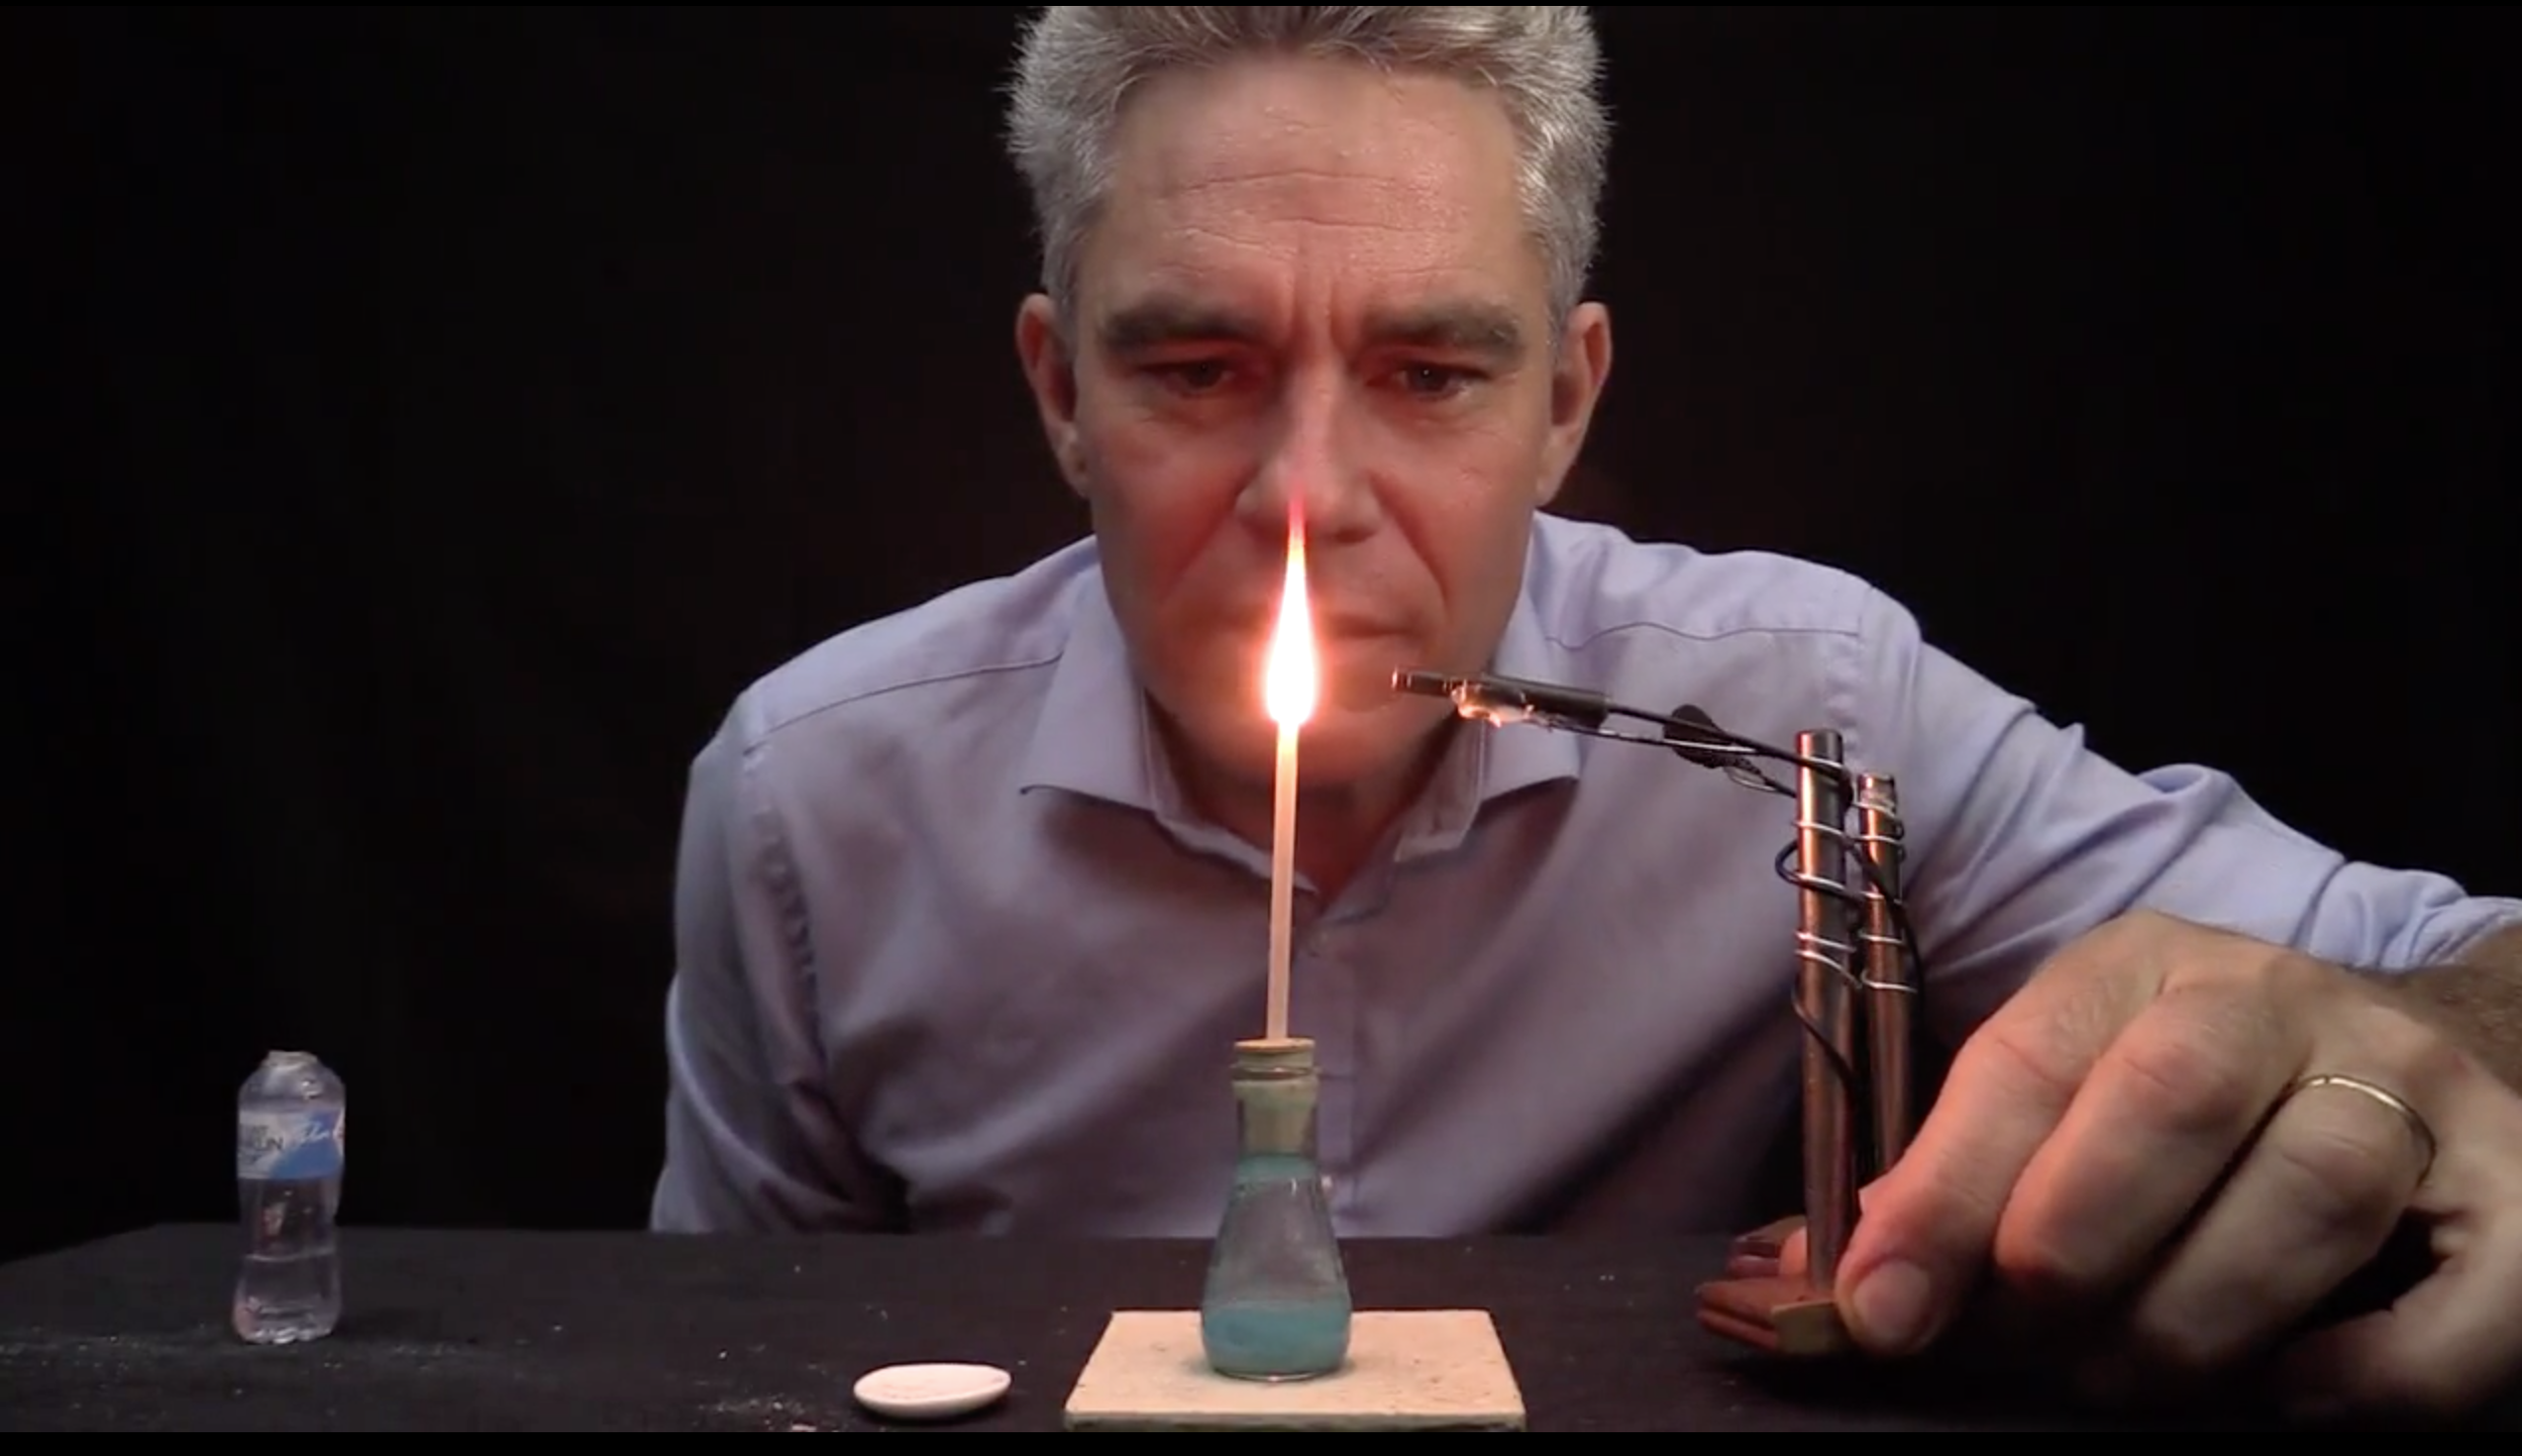 Listen to the soothing sounds of an explosive ASMR experiment